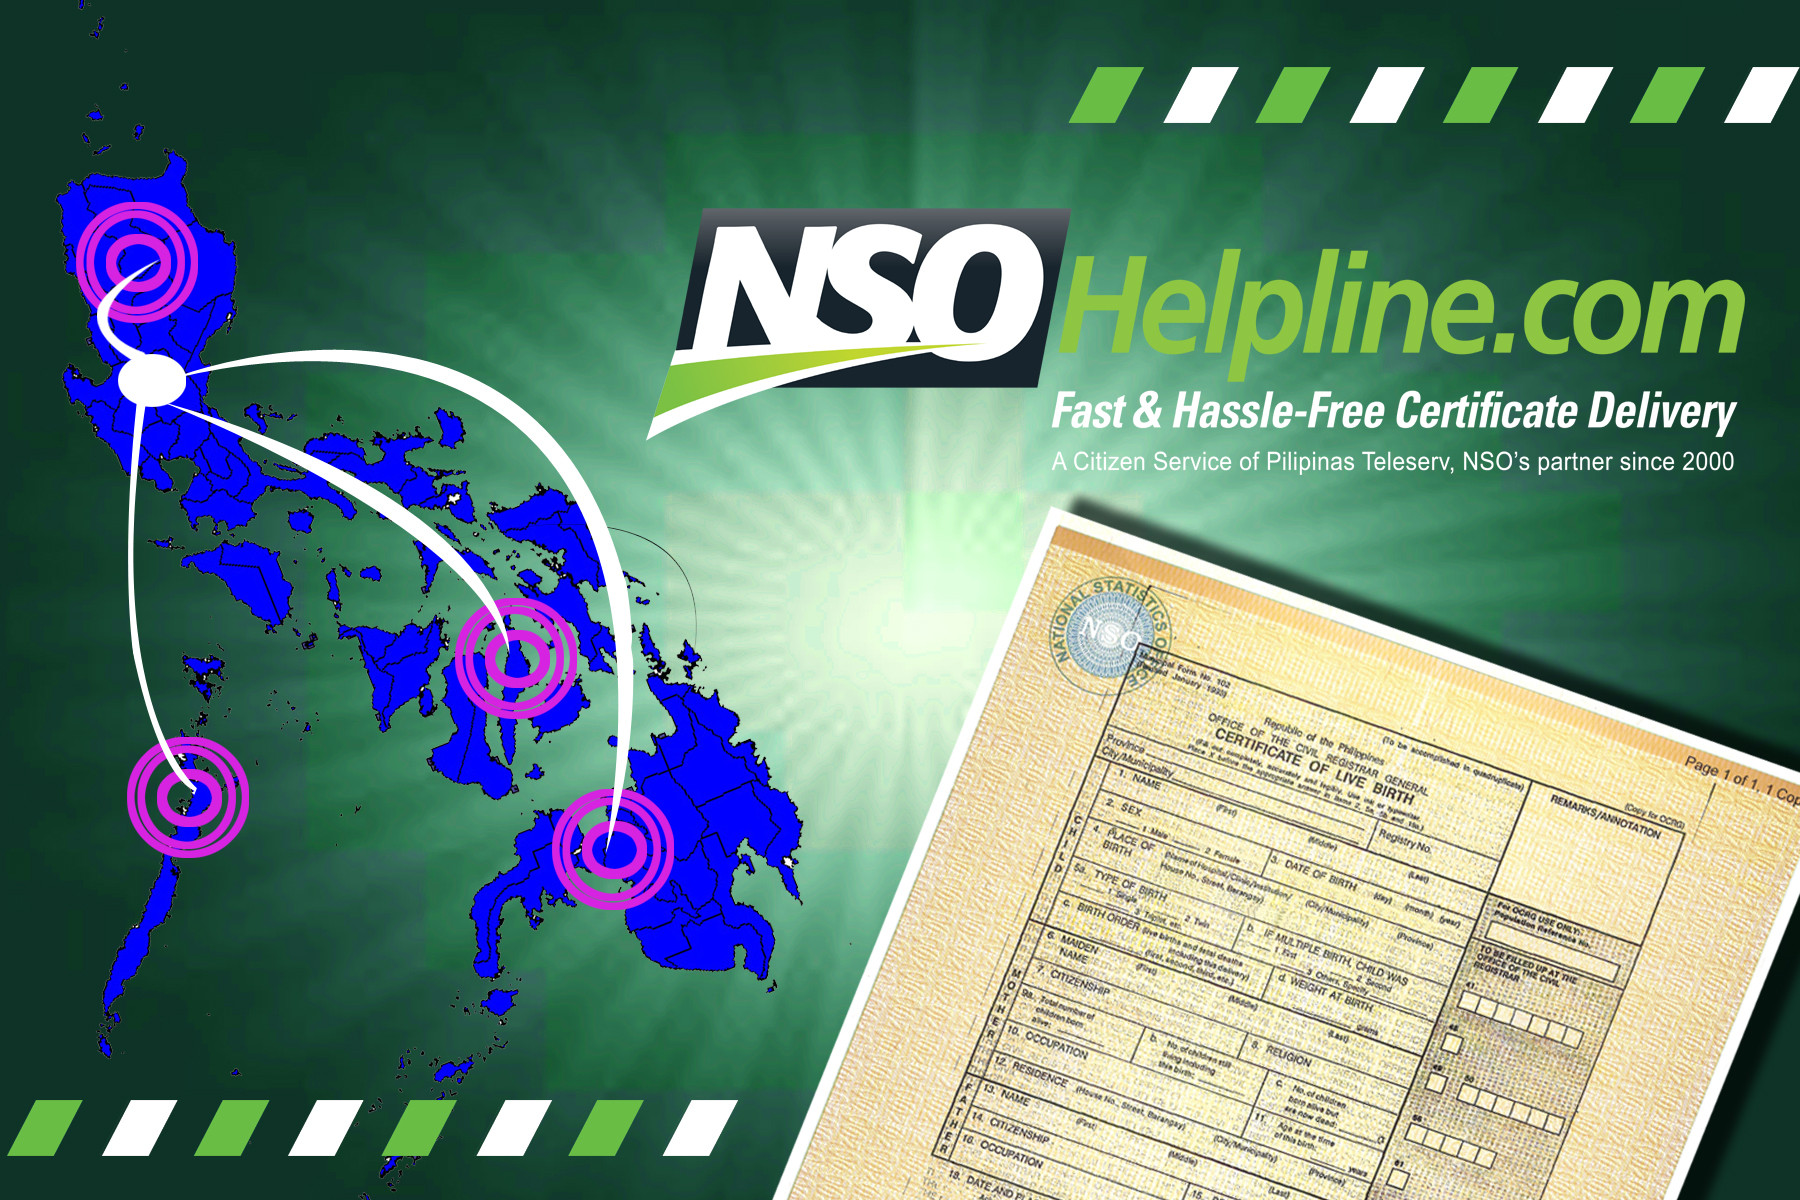 Have a worry free fast hassle free certificate delivery thru tired from waiting almost all day and getting caught in long lines just to get your birth certificate and other nso related certificates aiddatafo Image collections